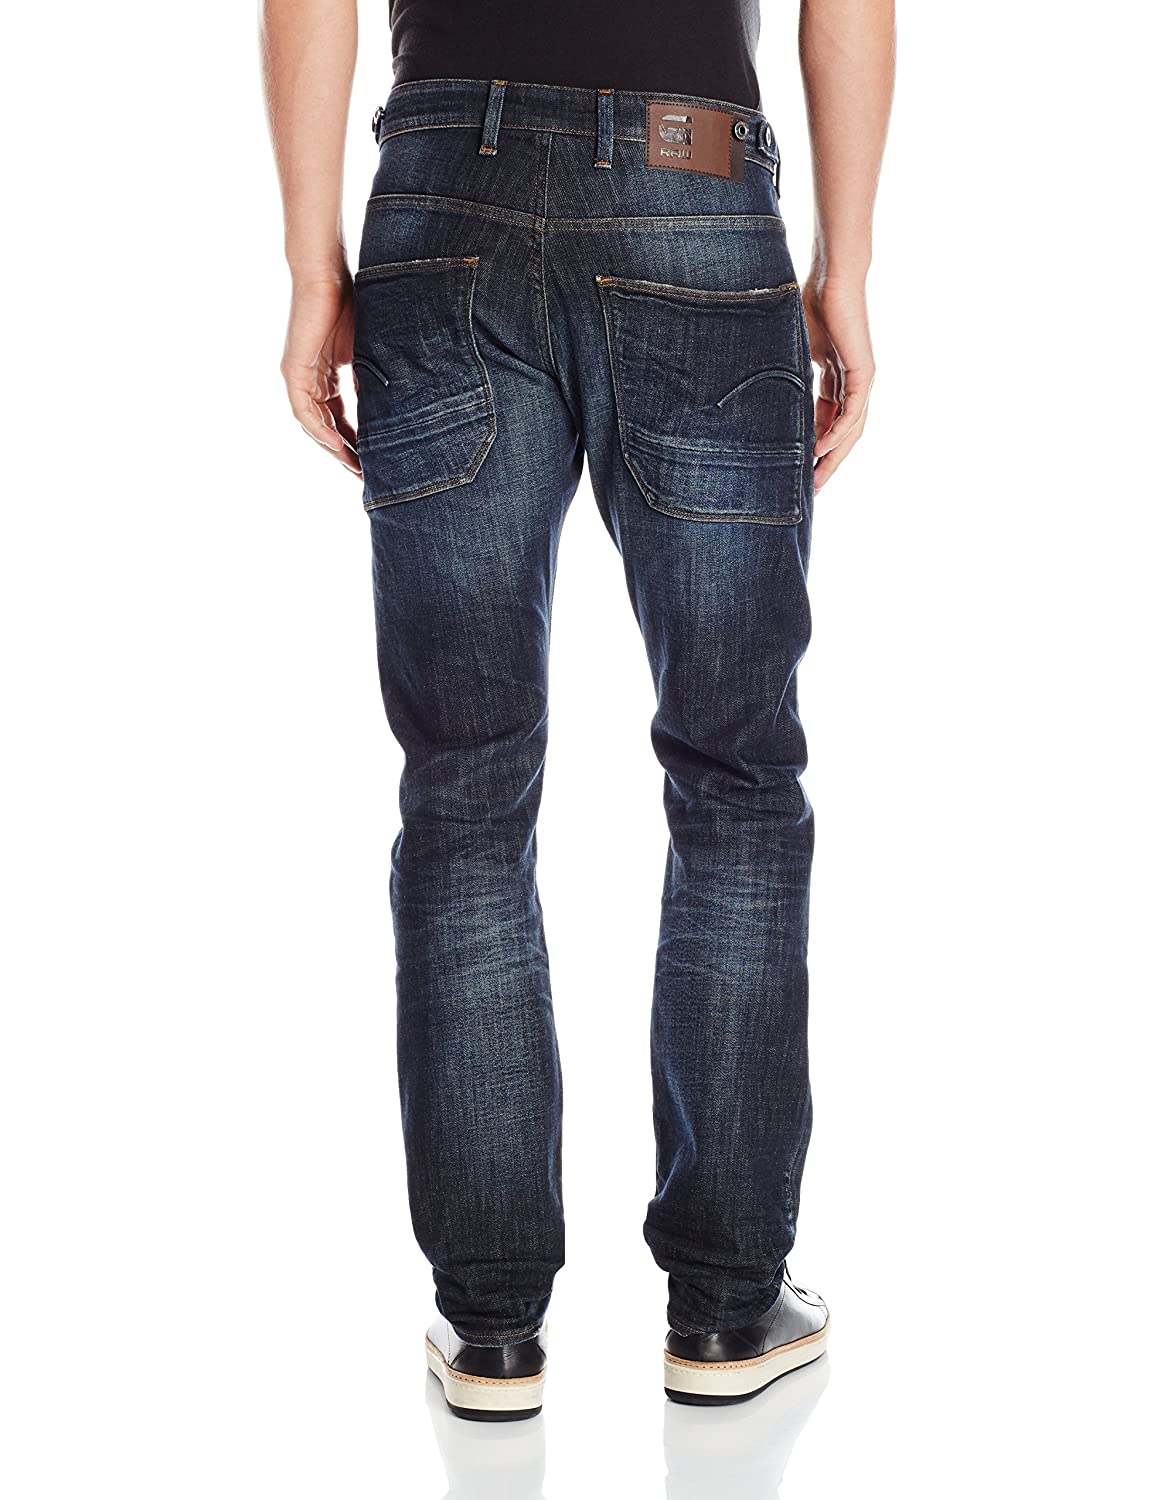 00fcaf35e4e Amazon.com: G-Star Raw Men's Holmer Tapered Fit Jean: Clothing